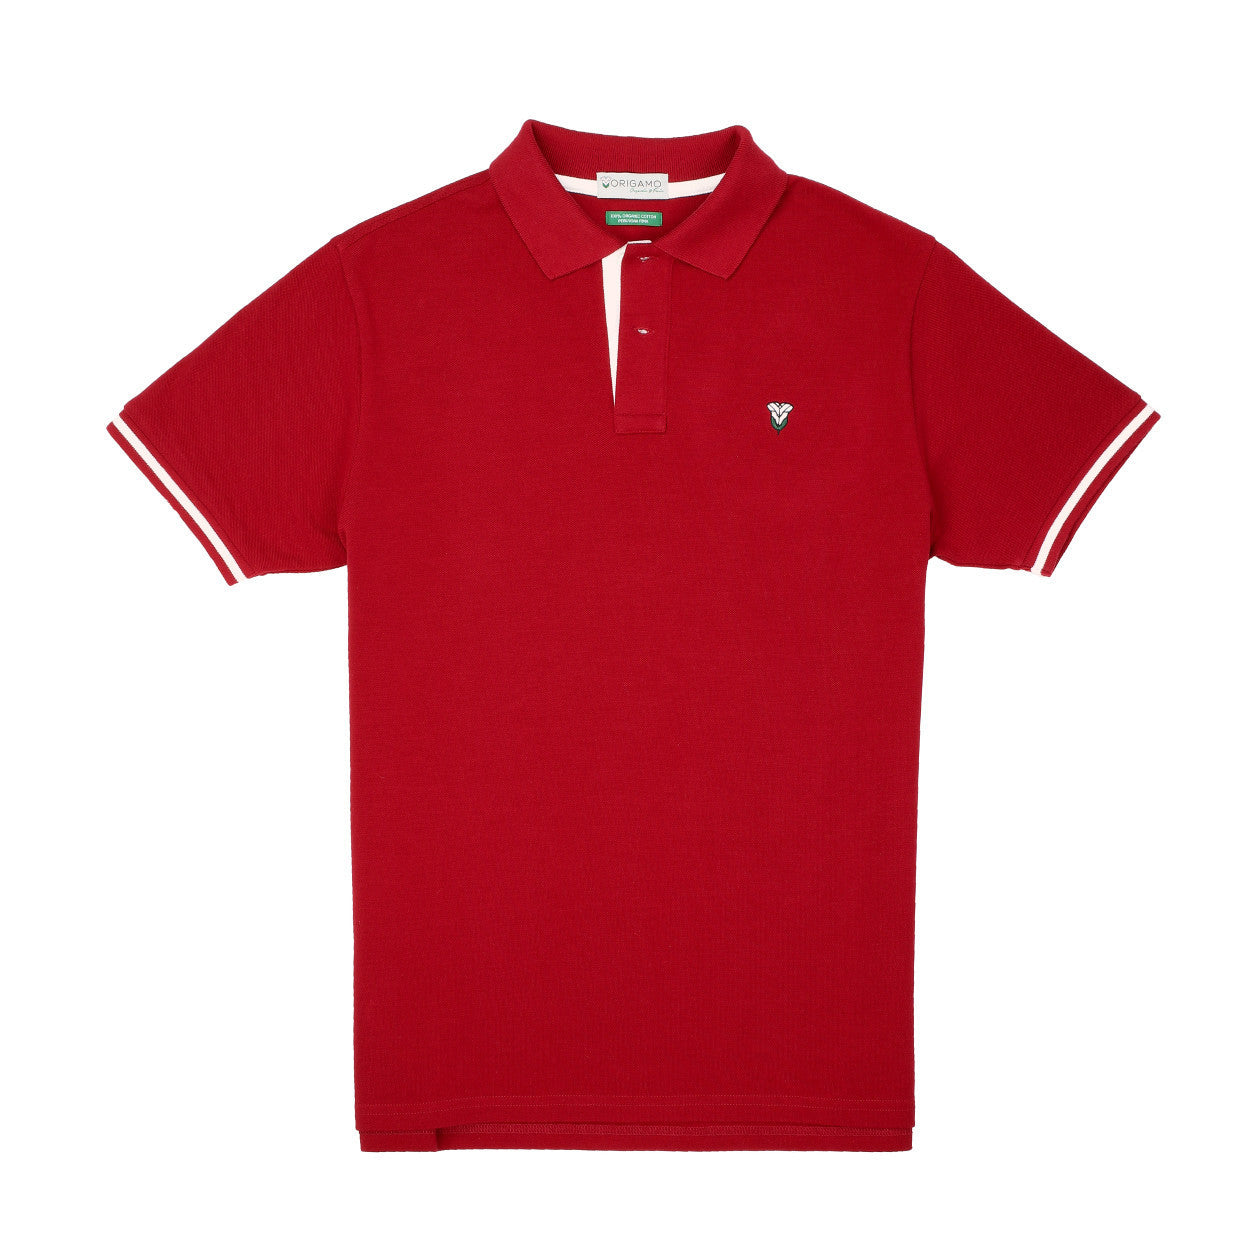 Pacific Polo Crimson Red Contrast White </br>Double Pique - 100% Organic Pima Cotton